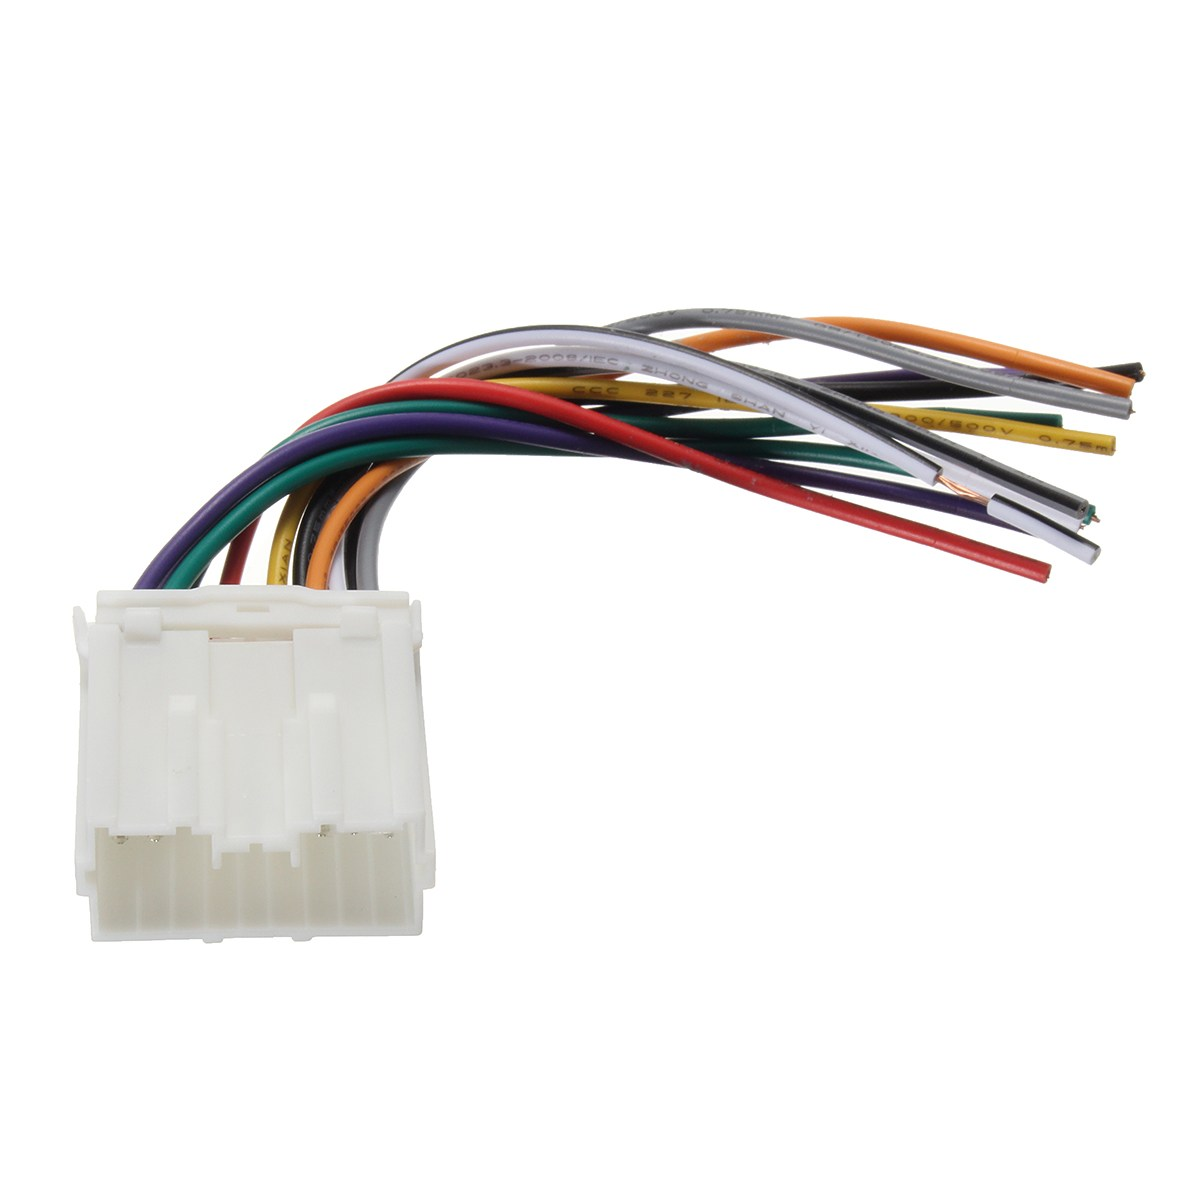 small resolution of kroak car stereo radio cd player wiring harness wire aftermarket for mitsubishi dwh612 in cables adapters sockets from automobiles motorcycles on